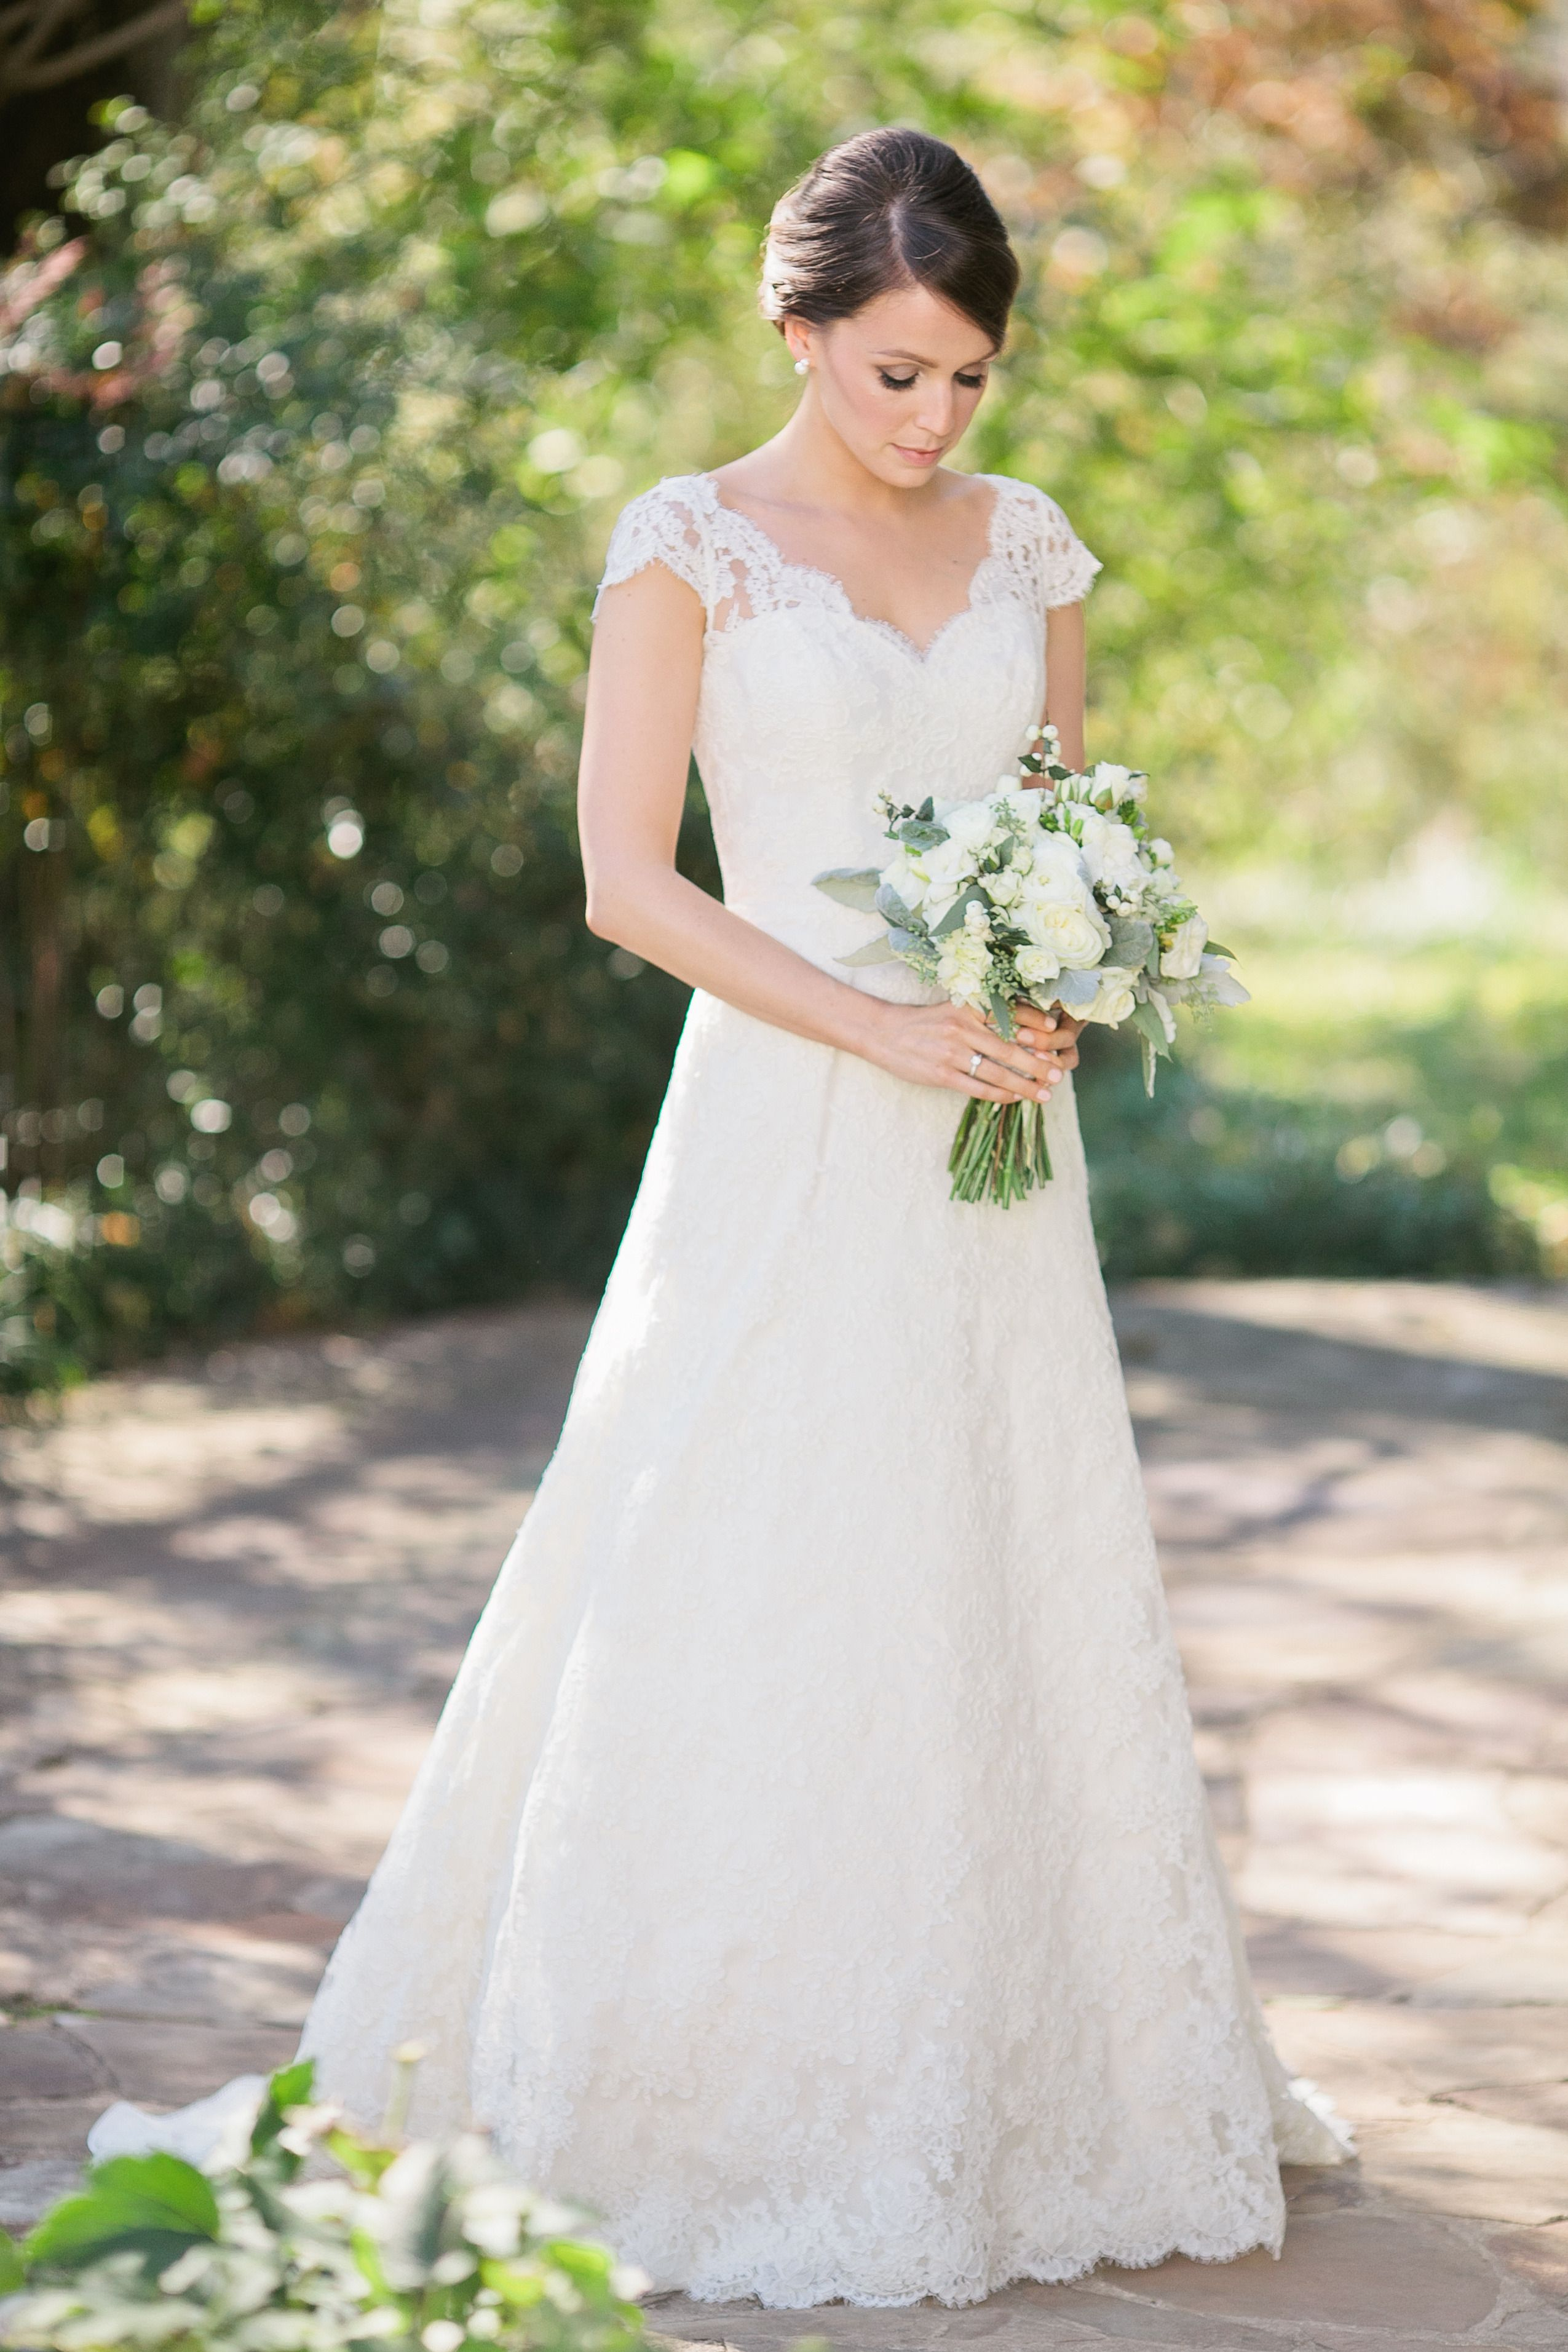 Intimate Southern Wedding Dressed in Neutrals Southern